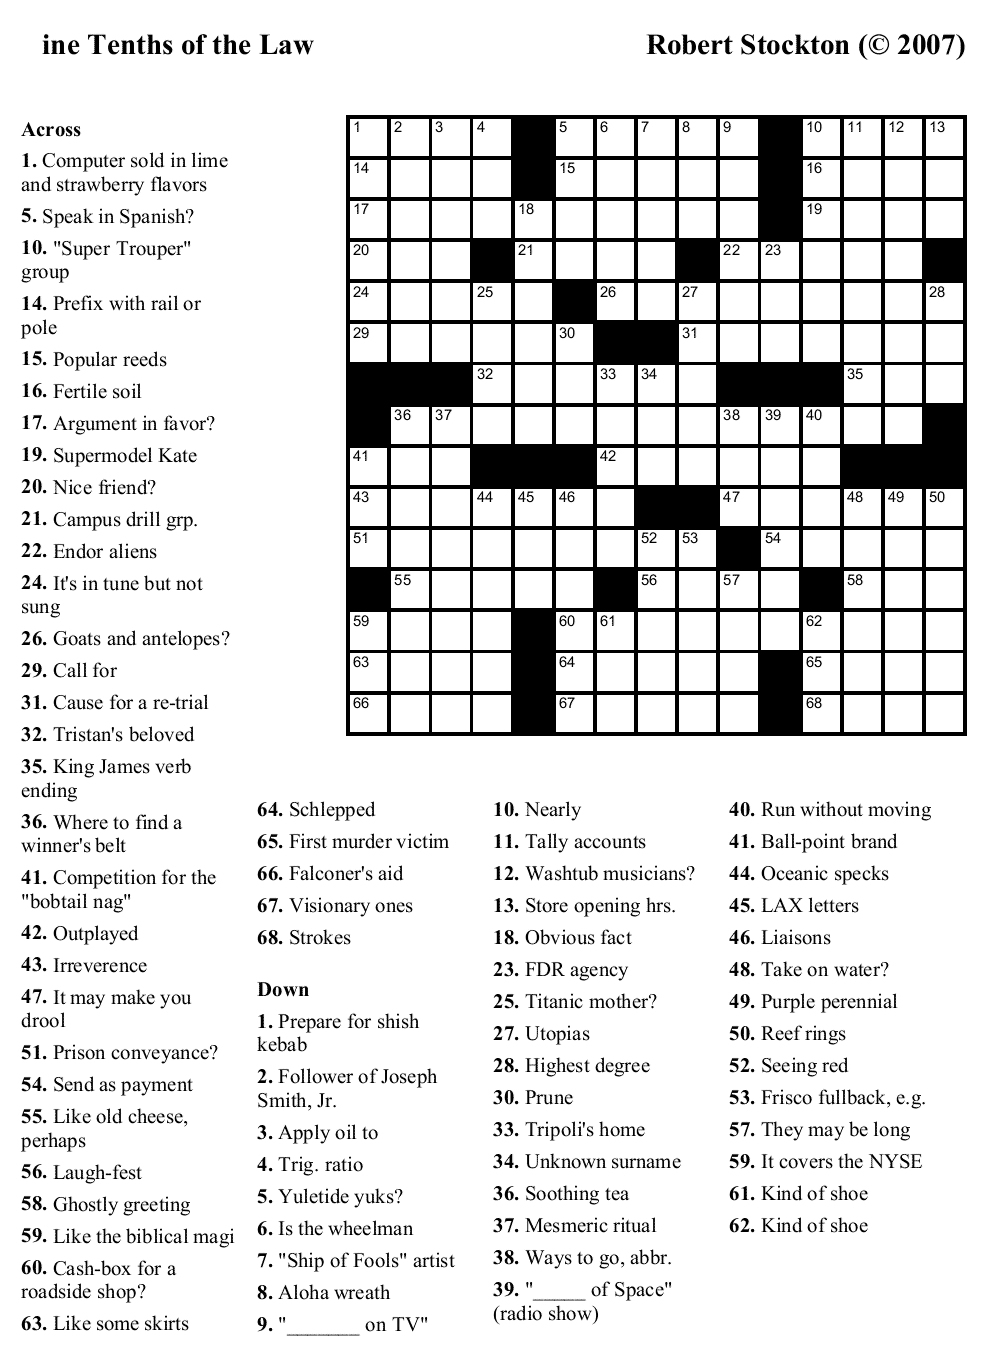 Easy Printable Crossword Puzzels - Infocap Ltd. - Free Printable Easy Crossword Puzzles